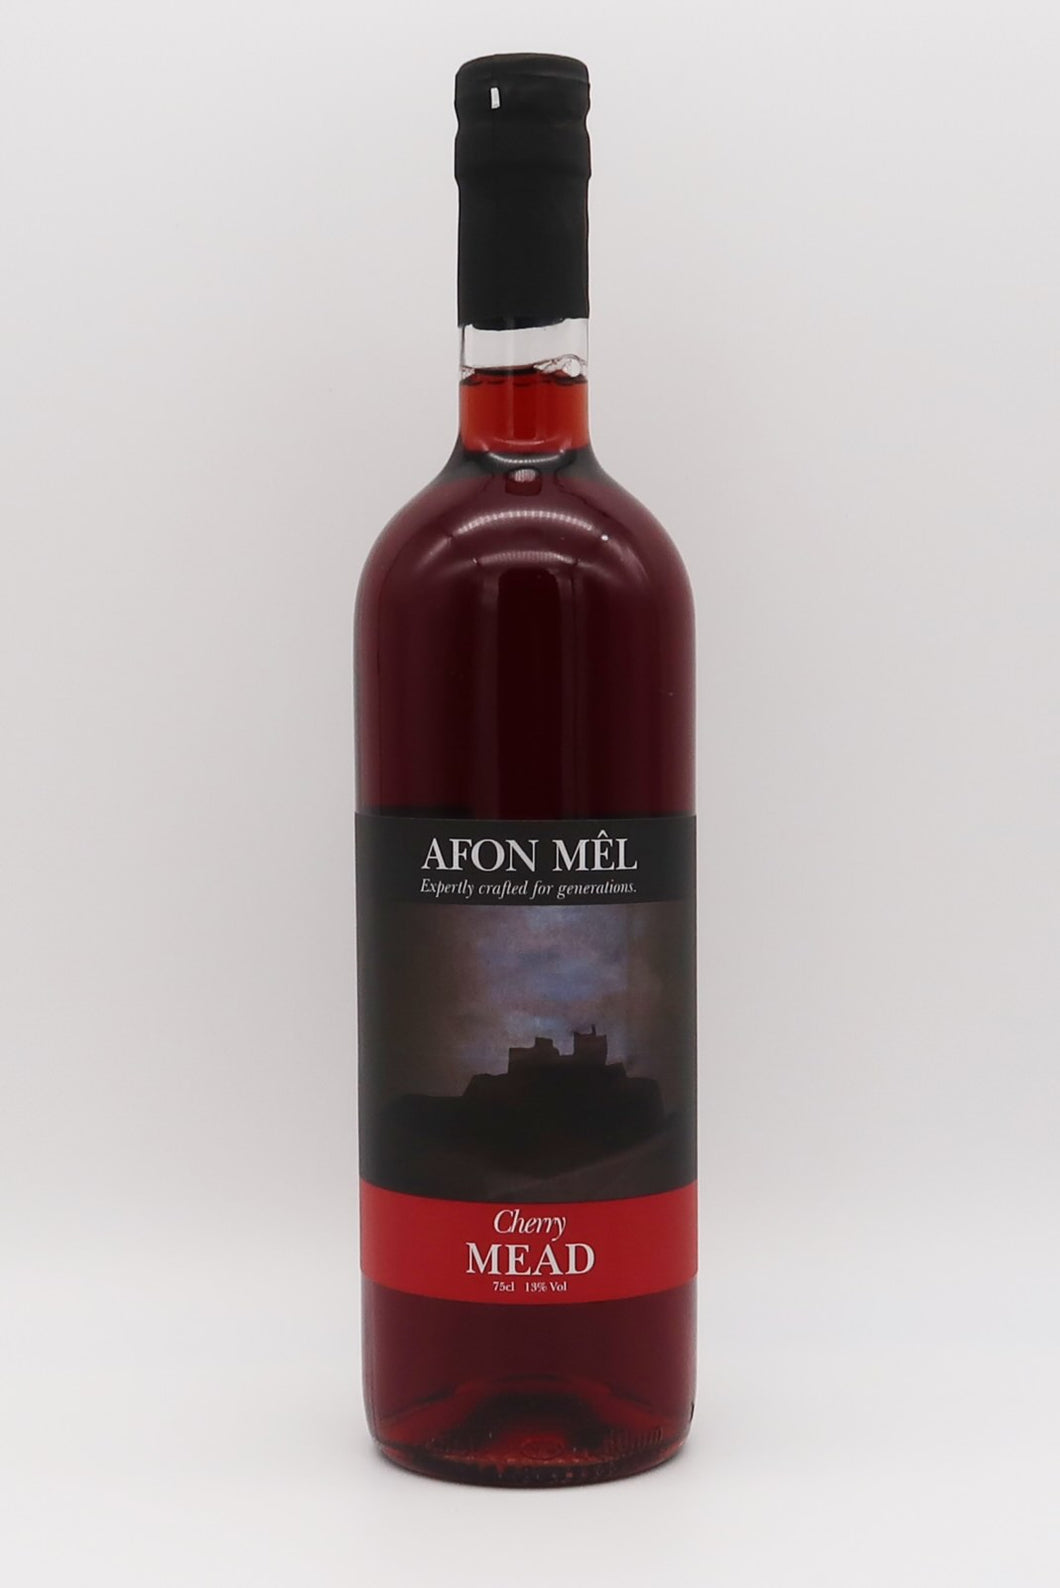 Welsh Cherry Mead (13%, 75cl)